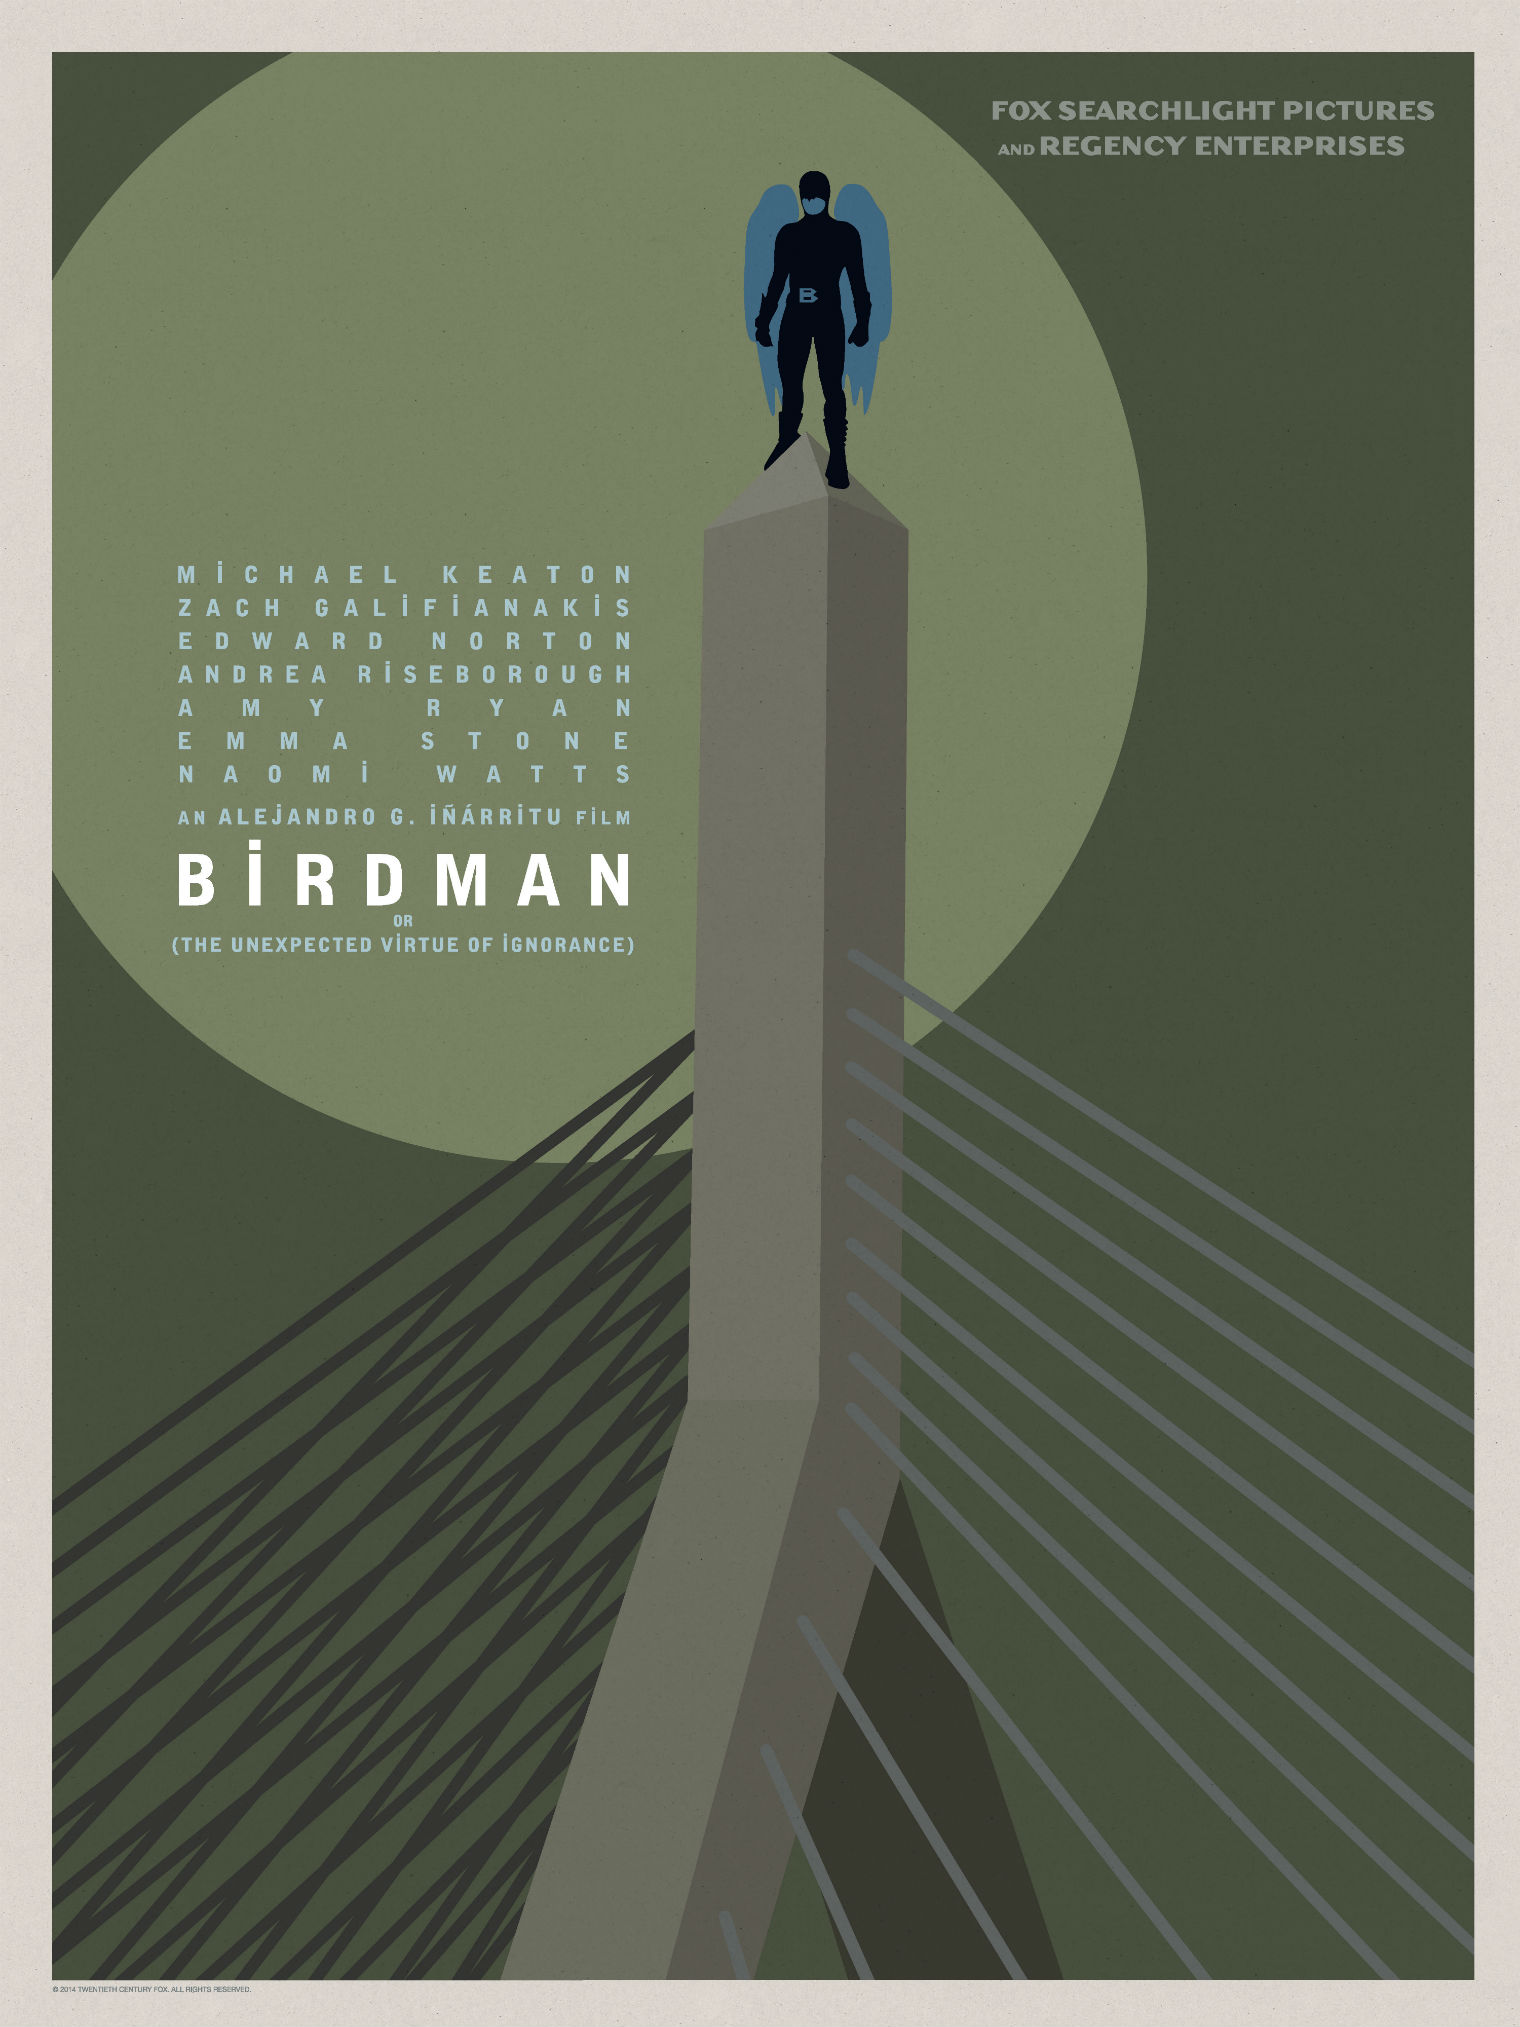 Birdman-Official Poster Minimalist XLG-13OUTUBRO2014-01